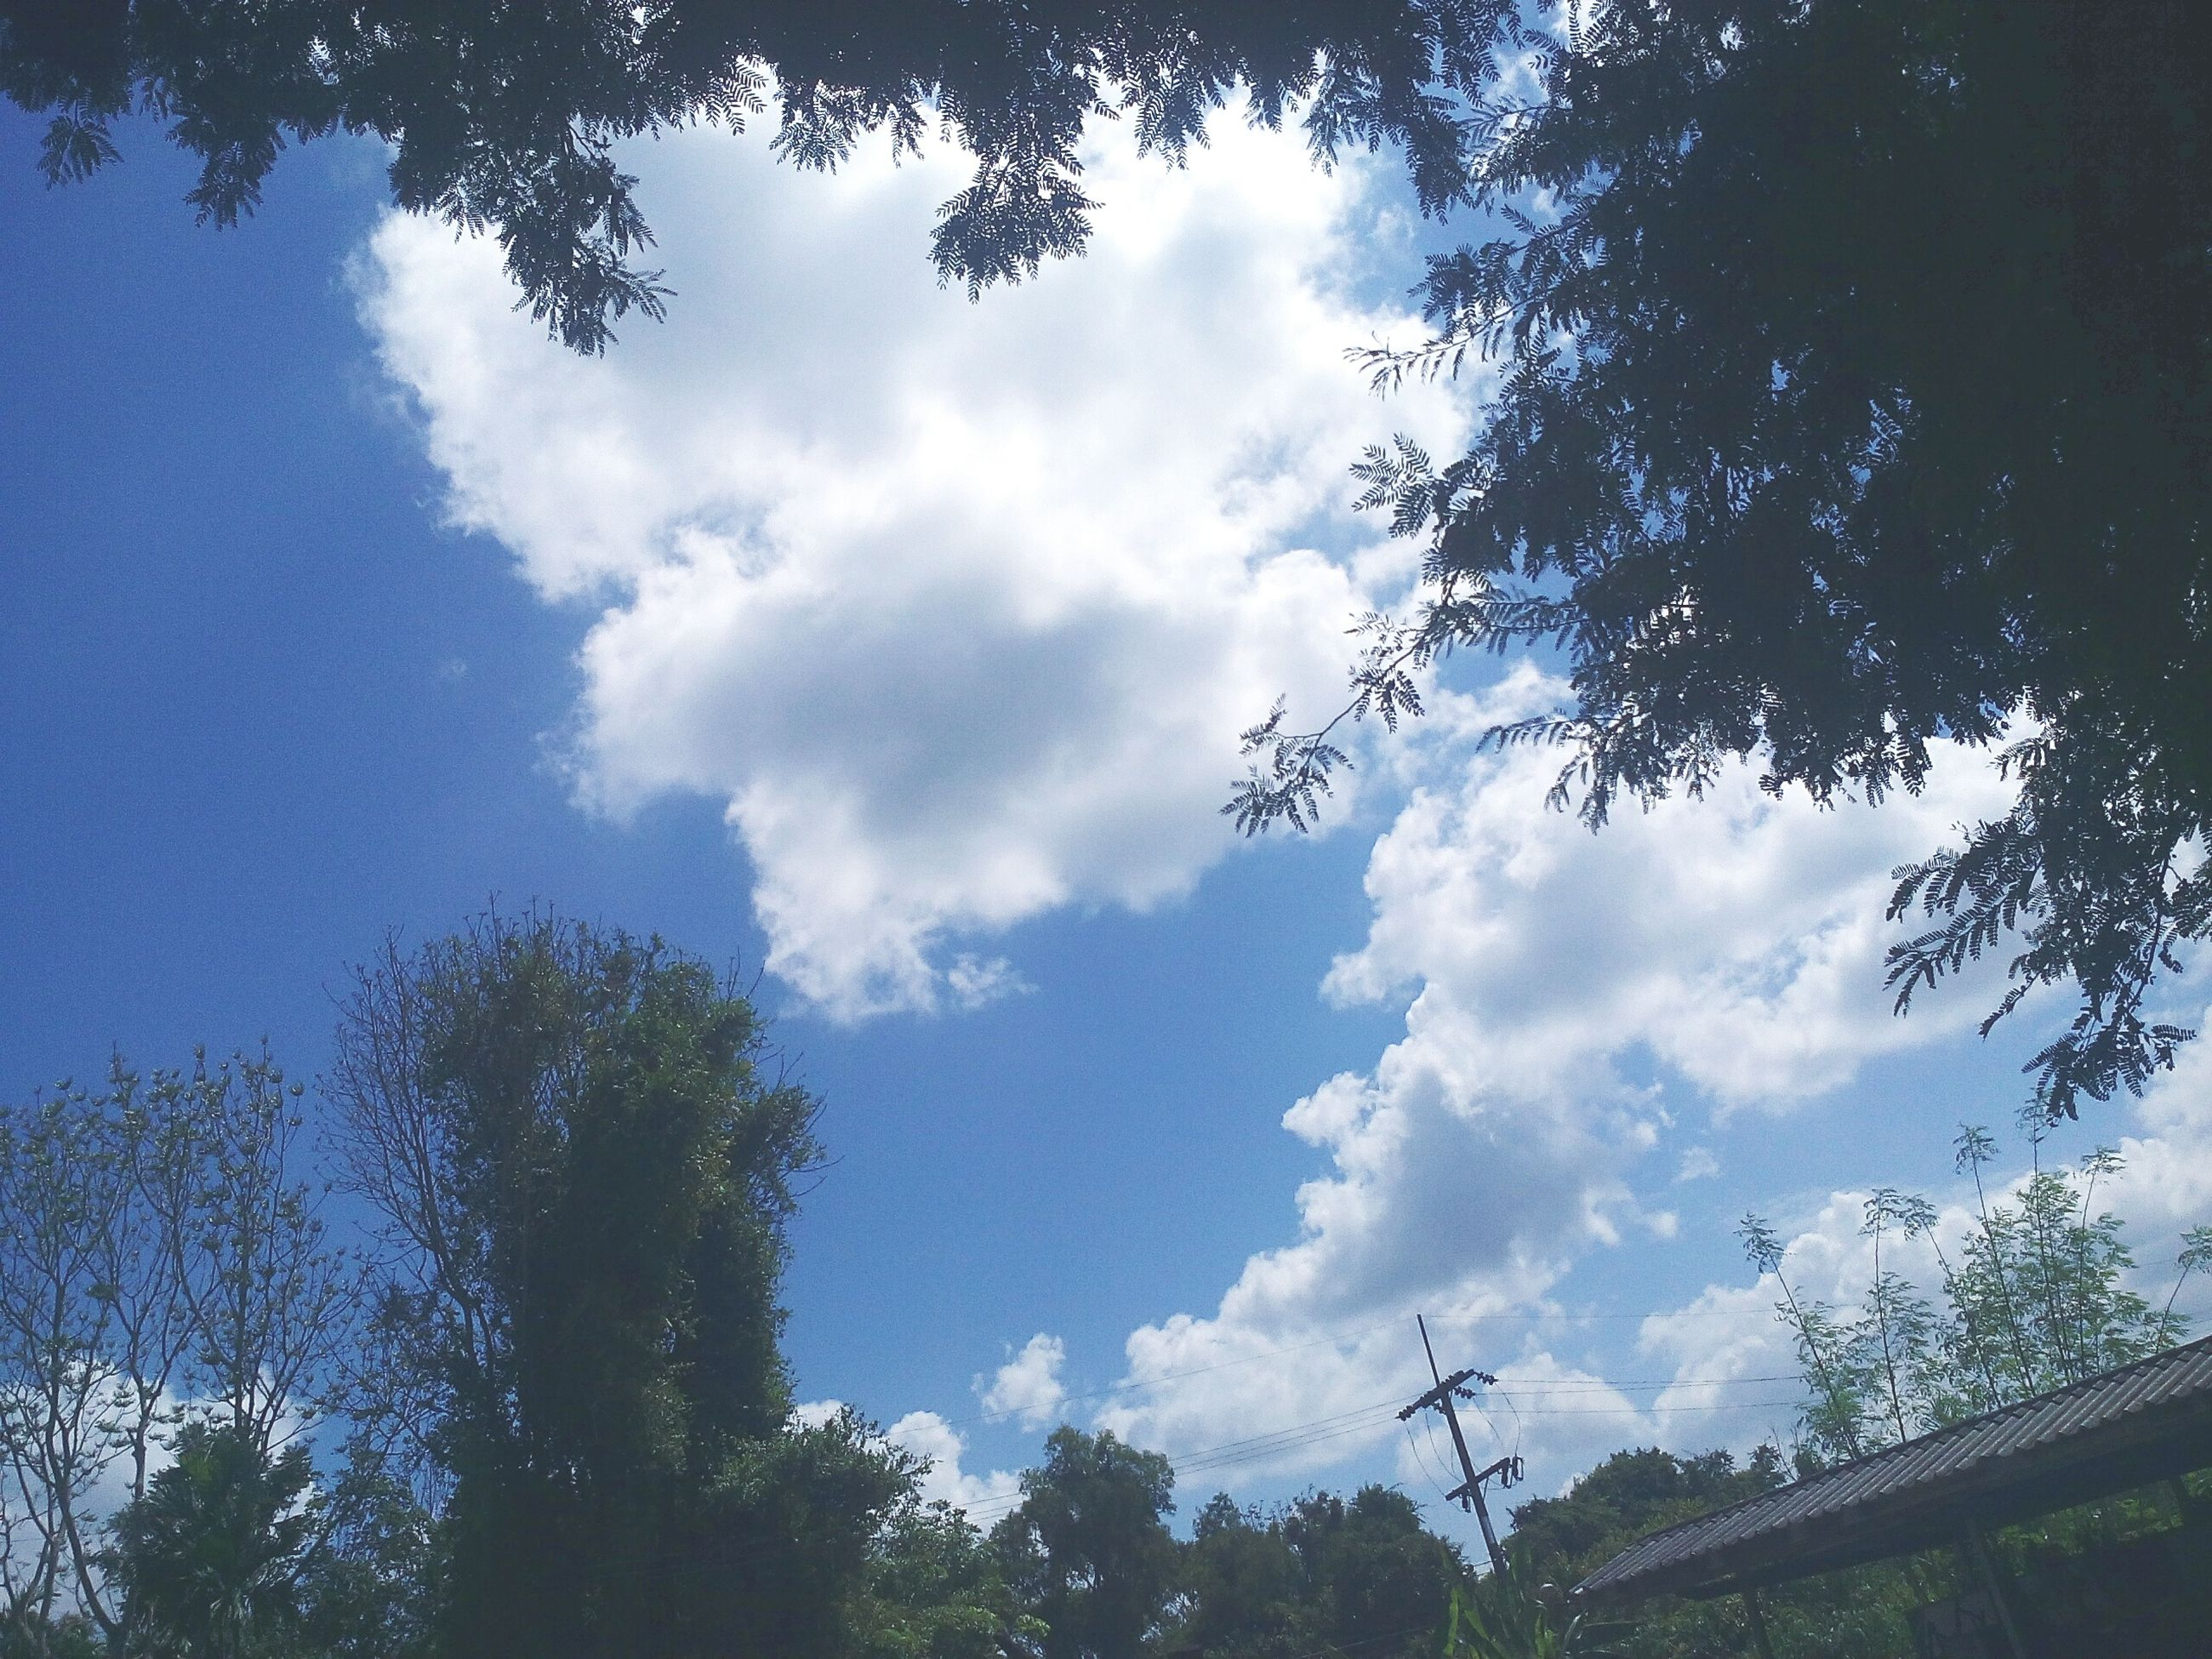 sky, low angle view, tree, cloud - sky, nature, beauty in nature, growth, no people, day, outdoors, treetop